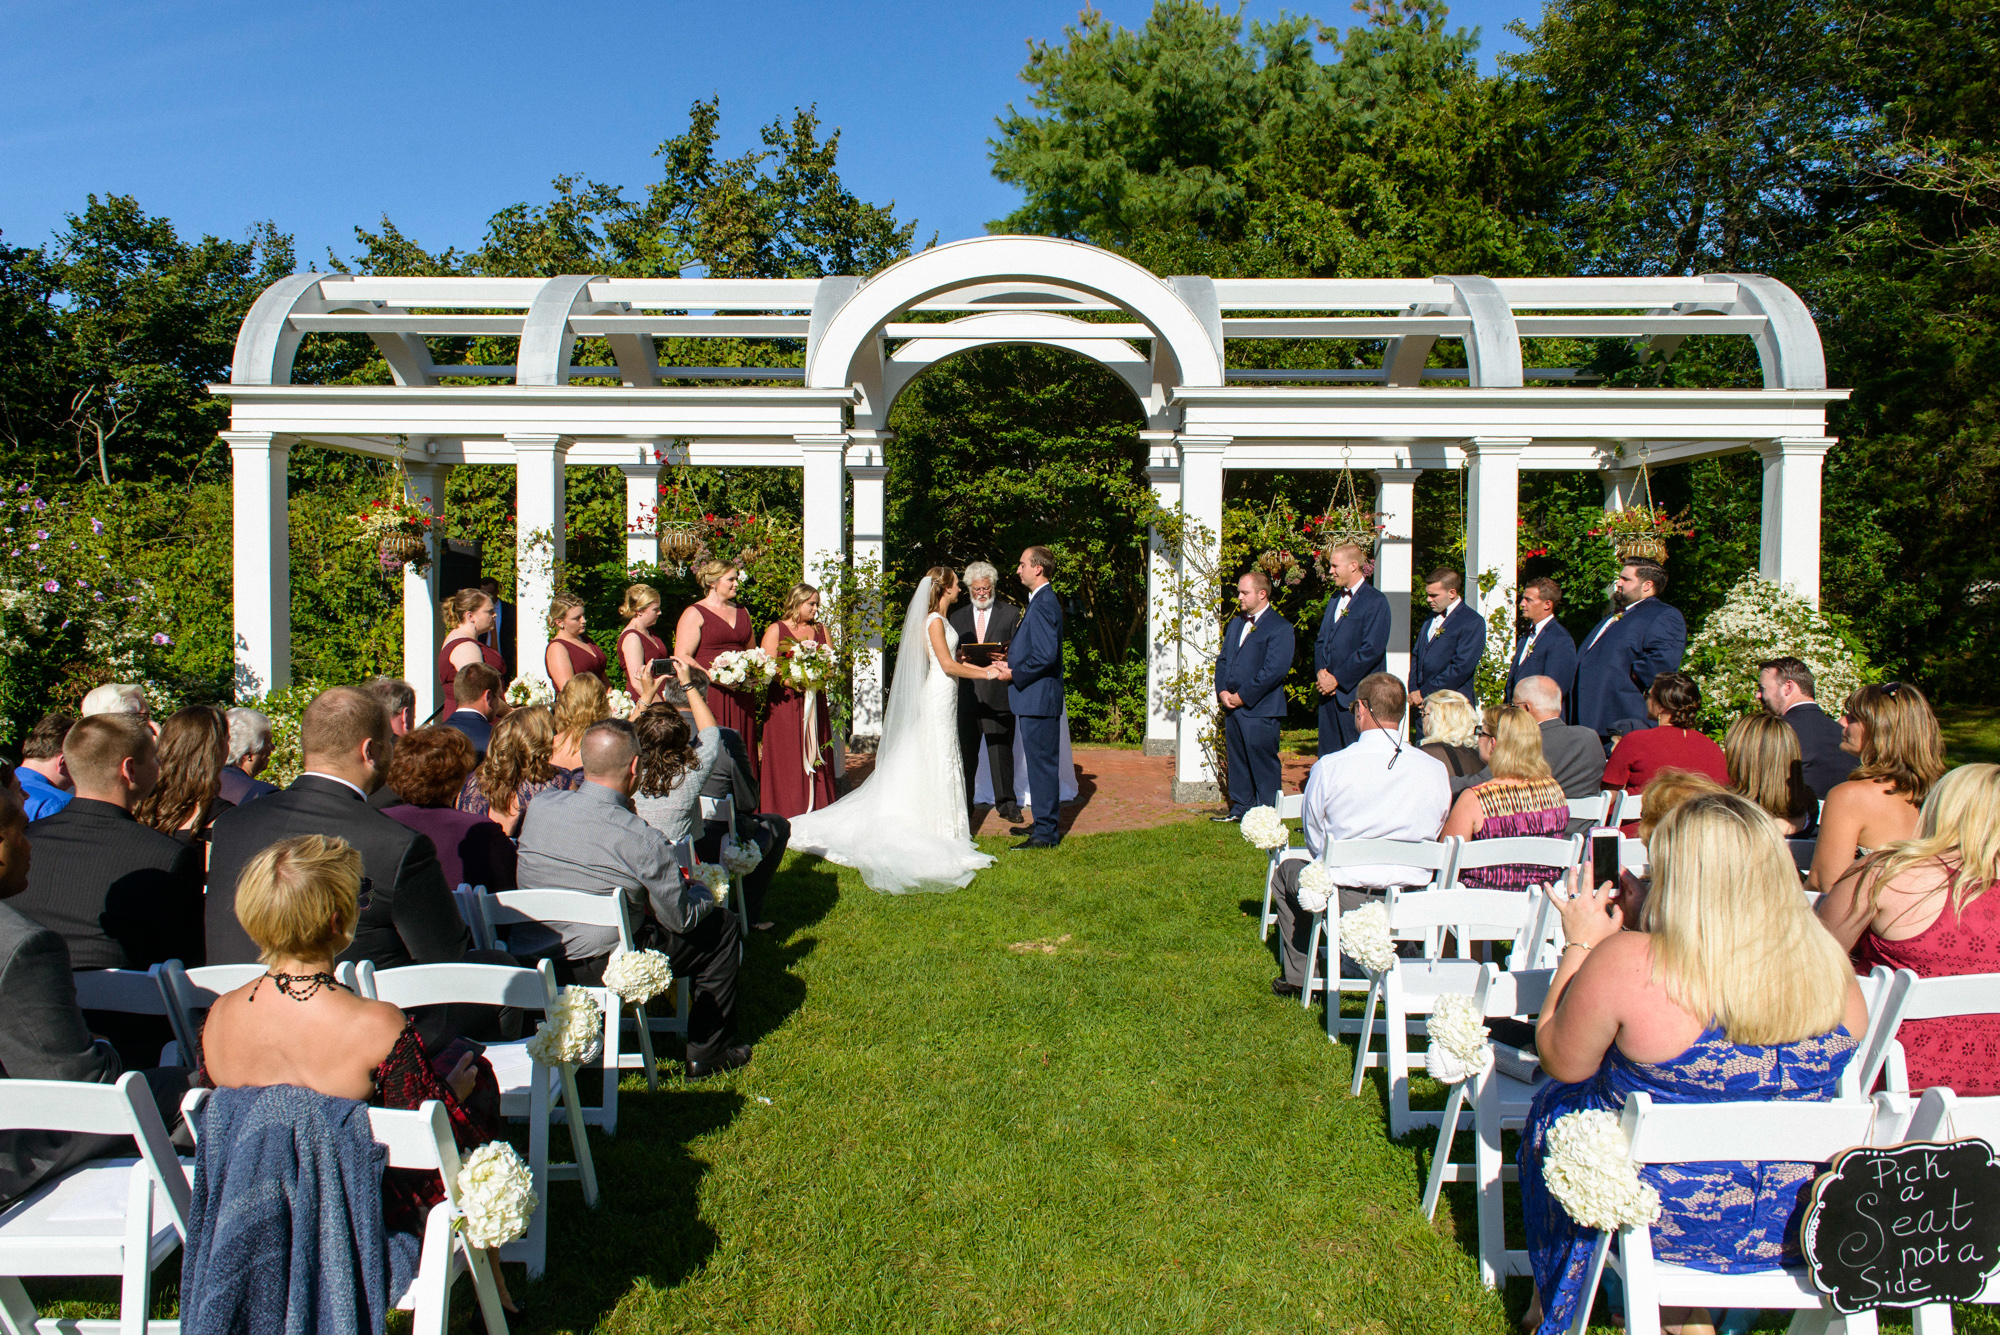 Wedding ceremony at the Harbor View Hotel's Great Lawn  photo by David Welch Photography